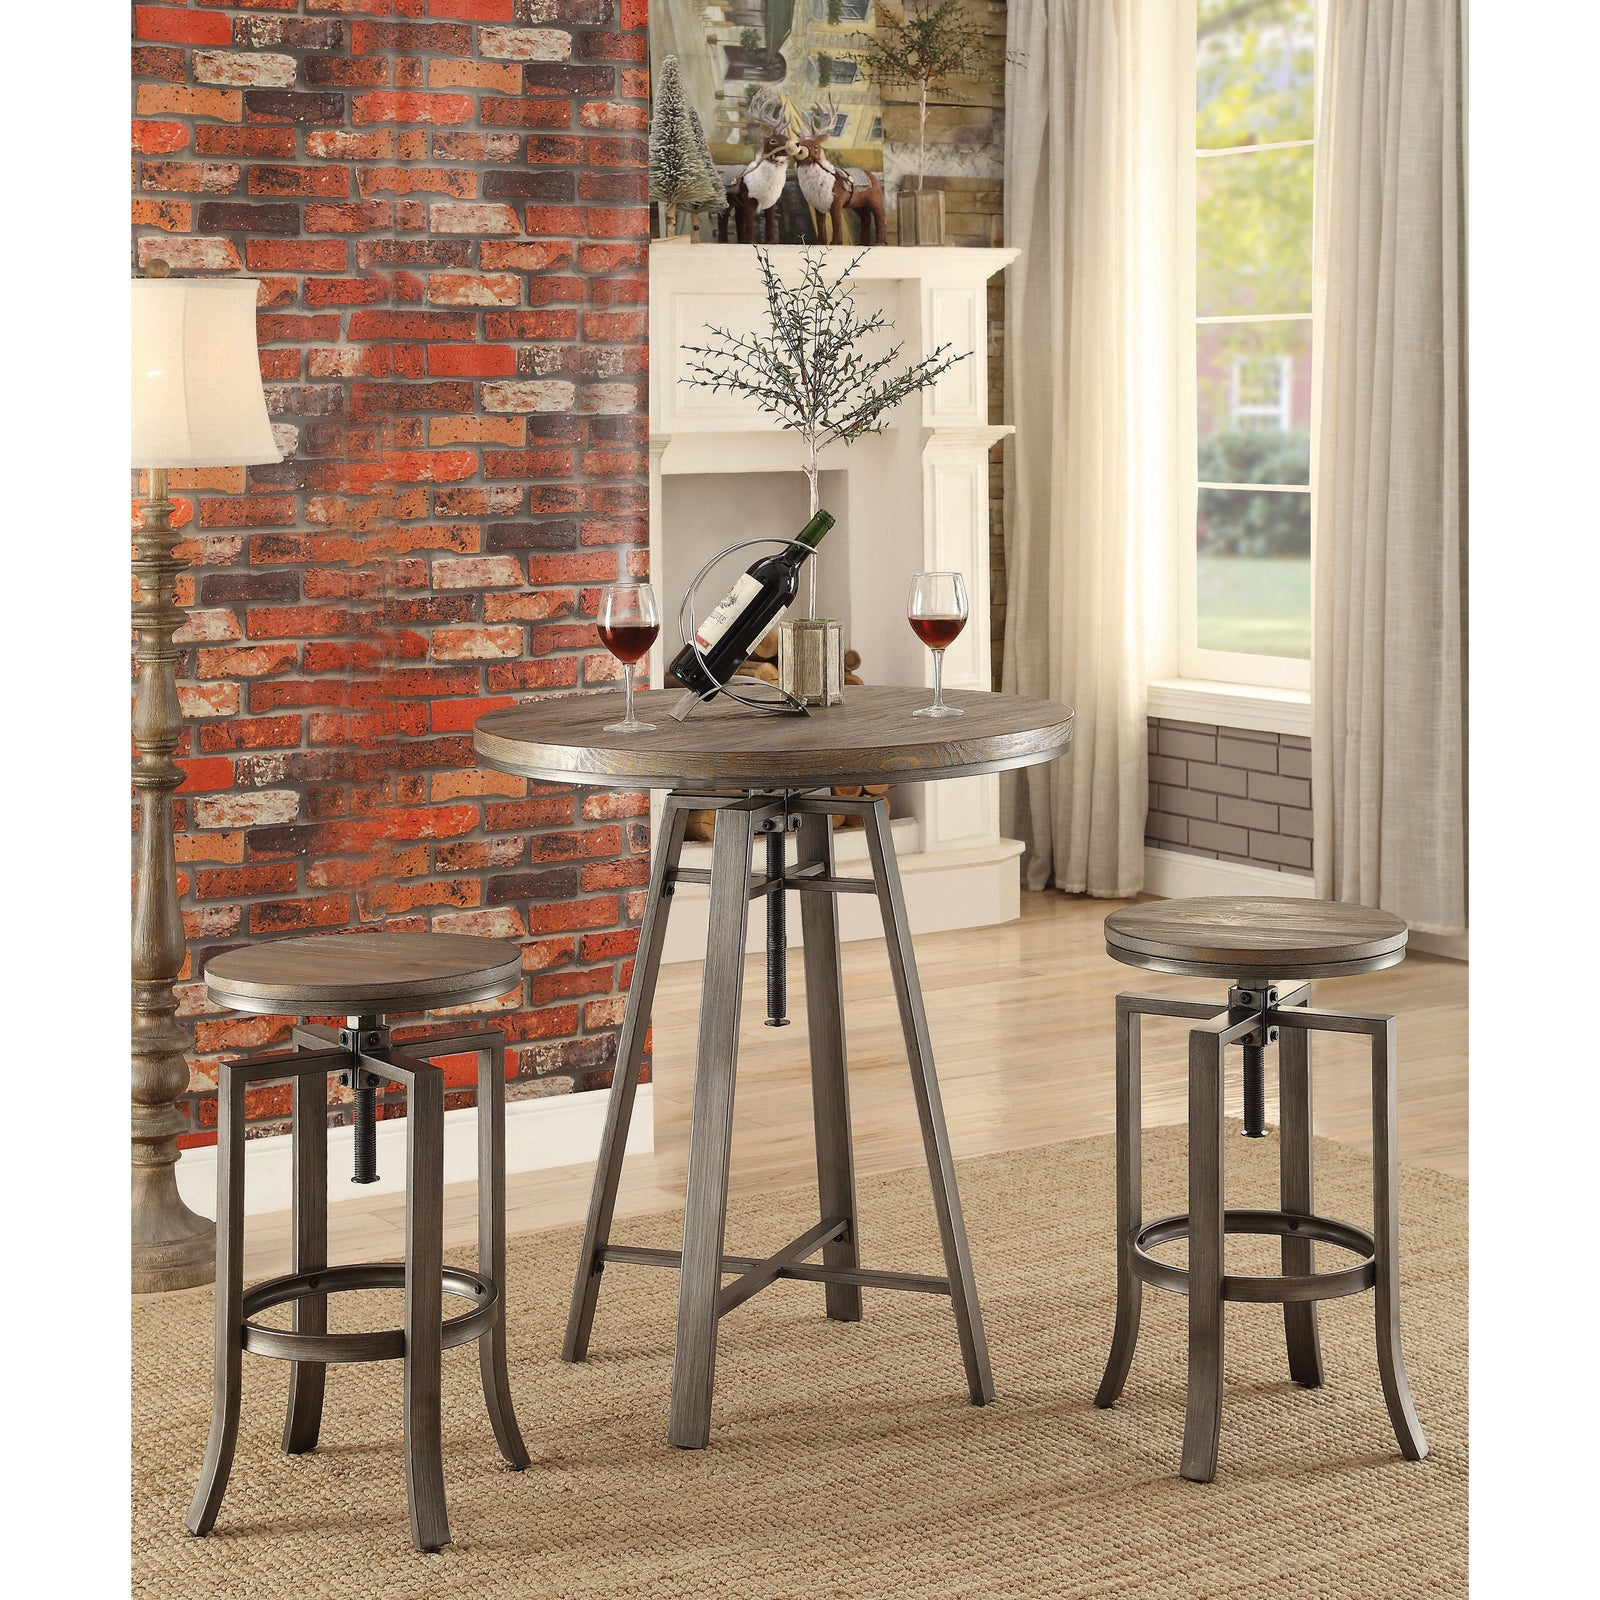 Coaster 122101 | Adjustable Height Swivel Bar Stools With Footrest Set Of 2